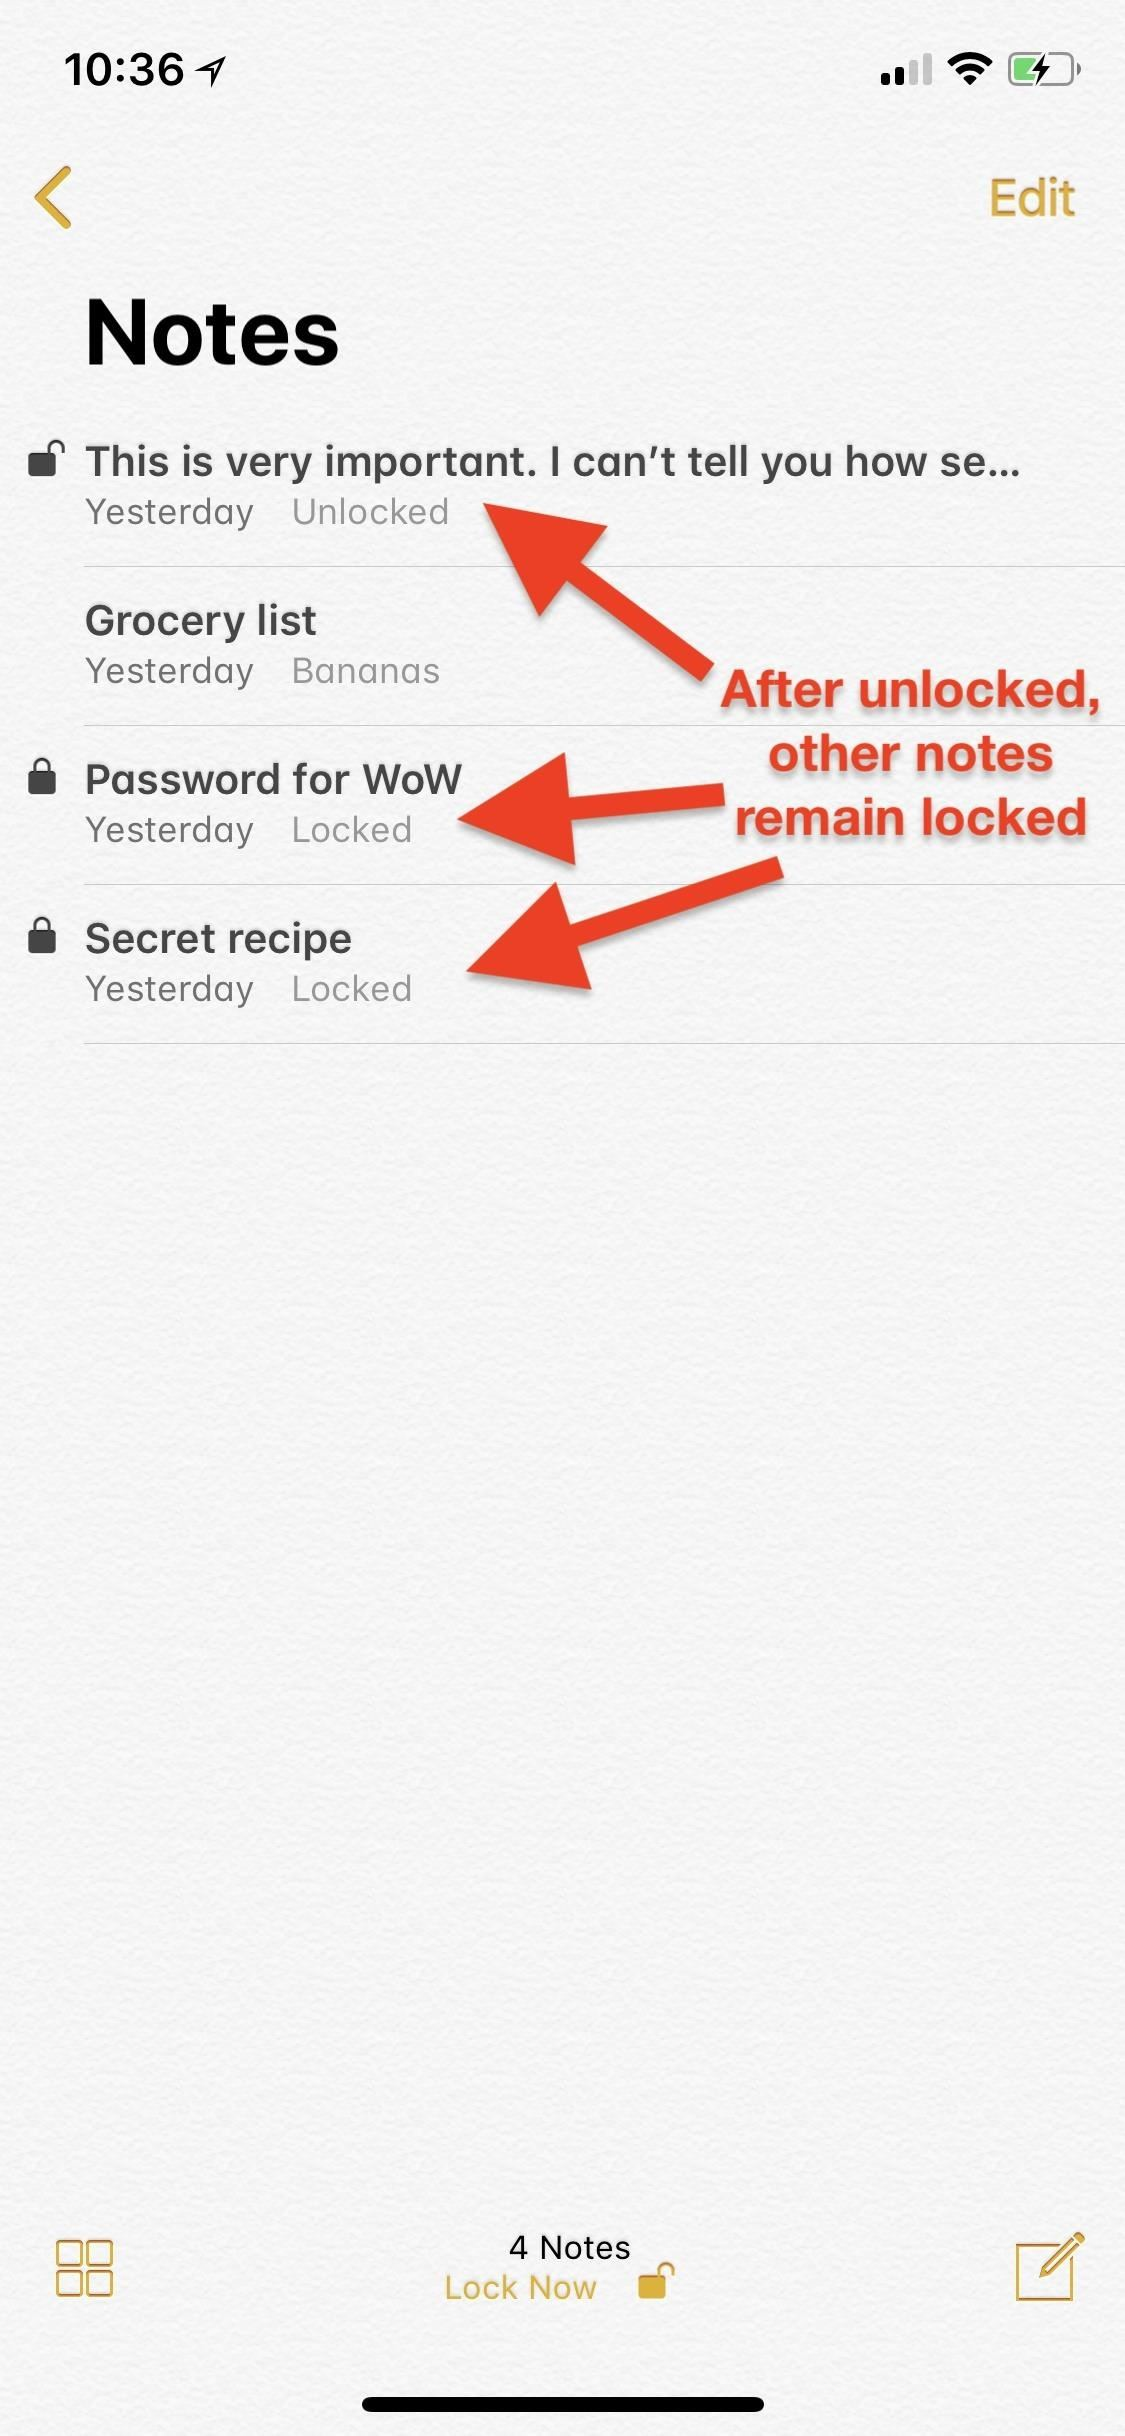 Notes 101: The Trick to Protecting Each Note with Separate, Unique Passwords